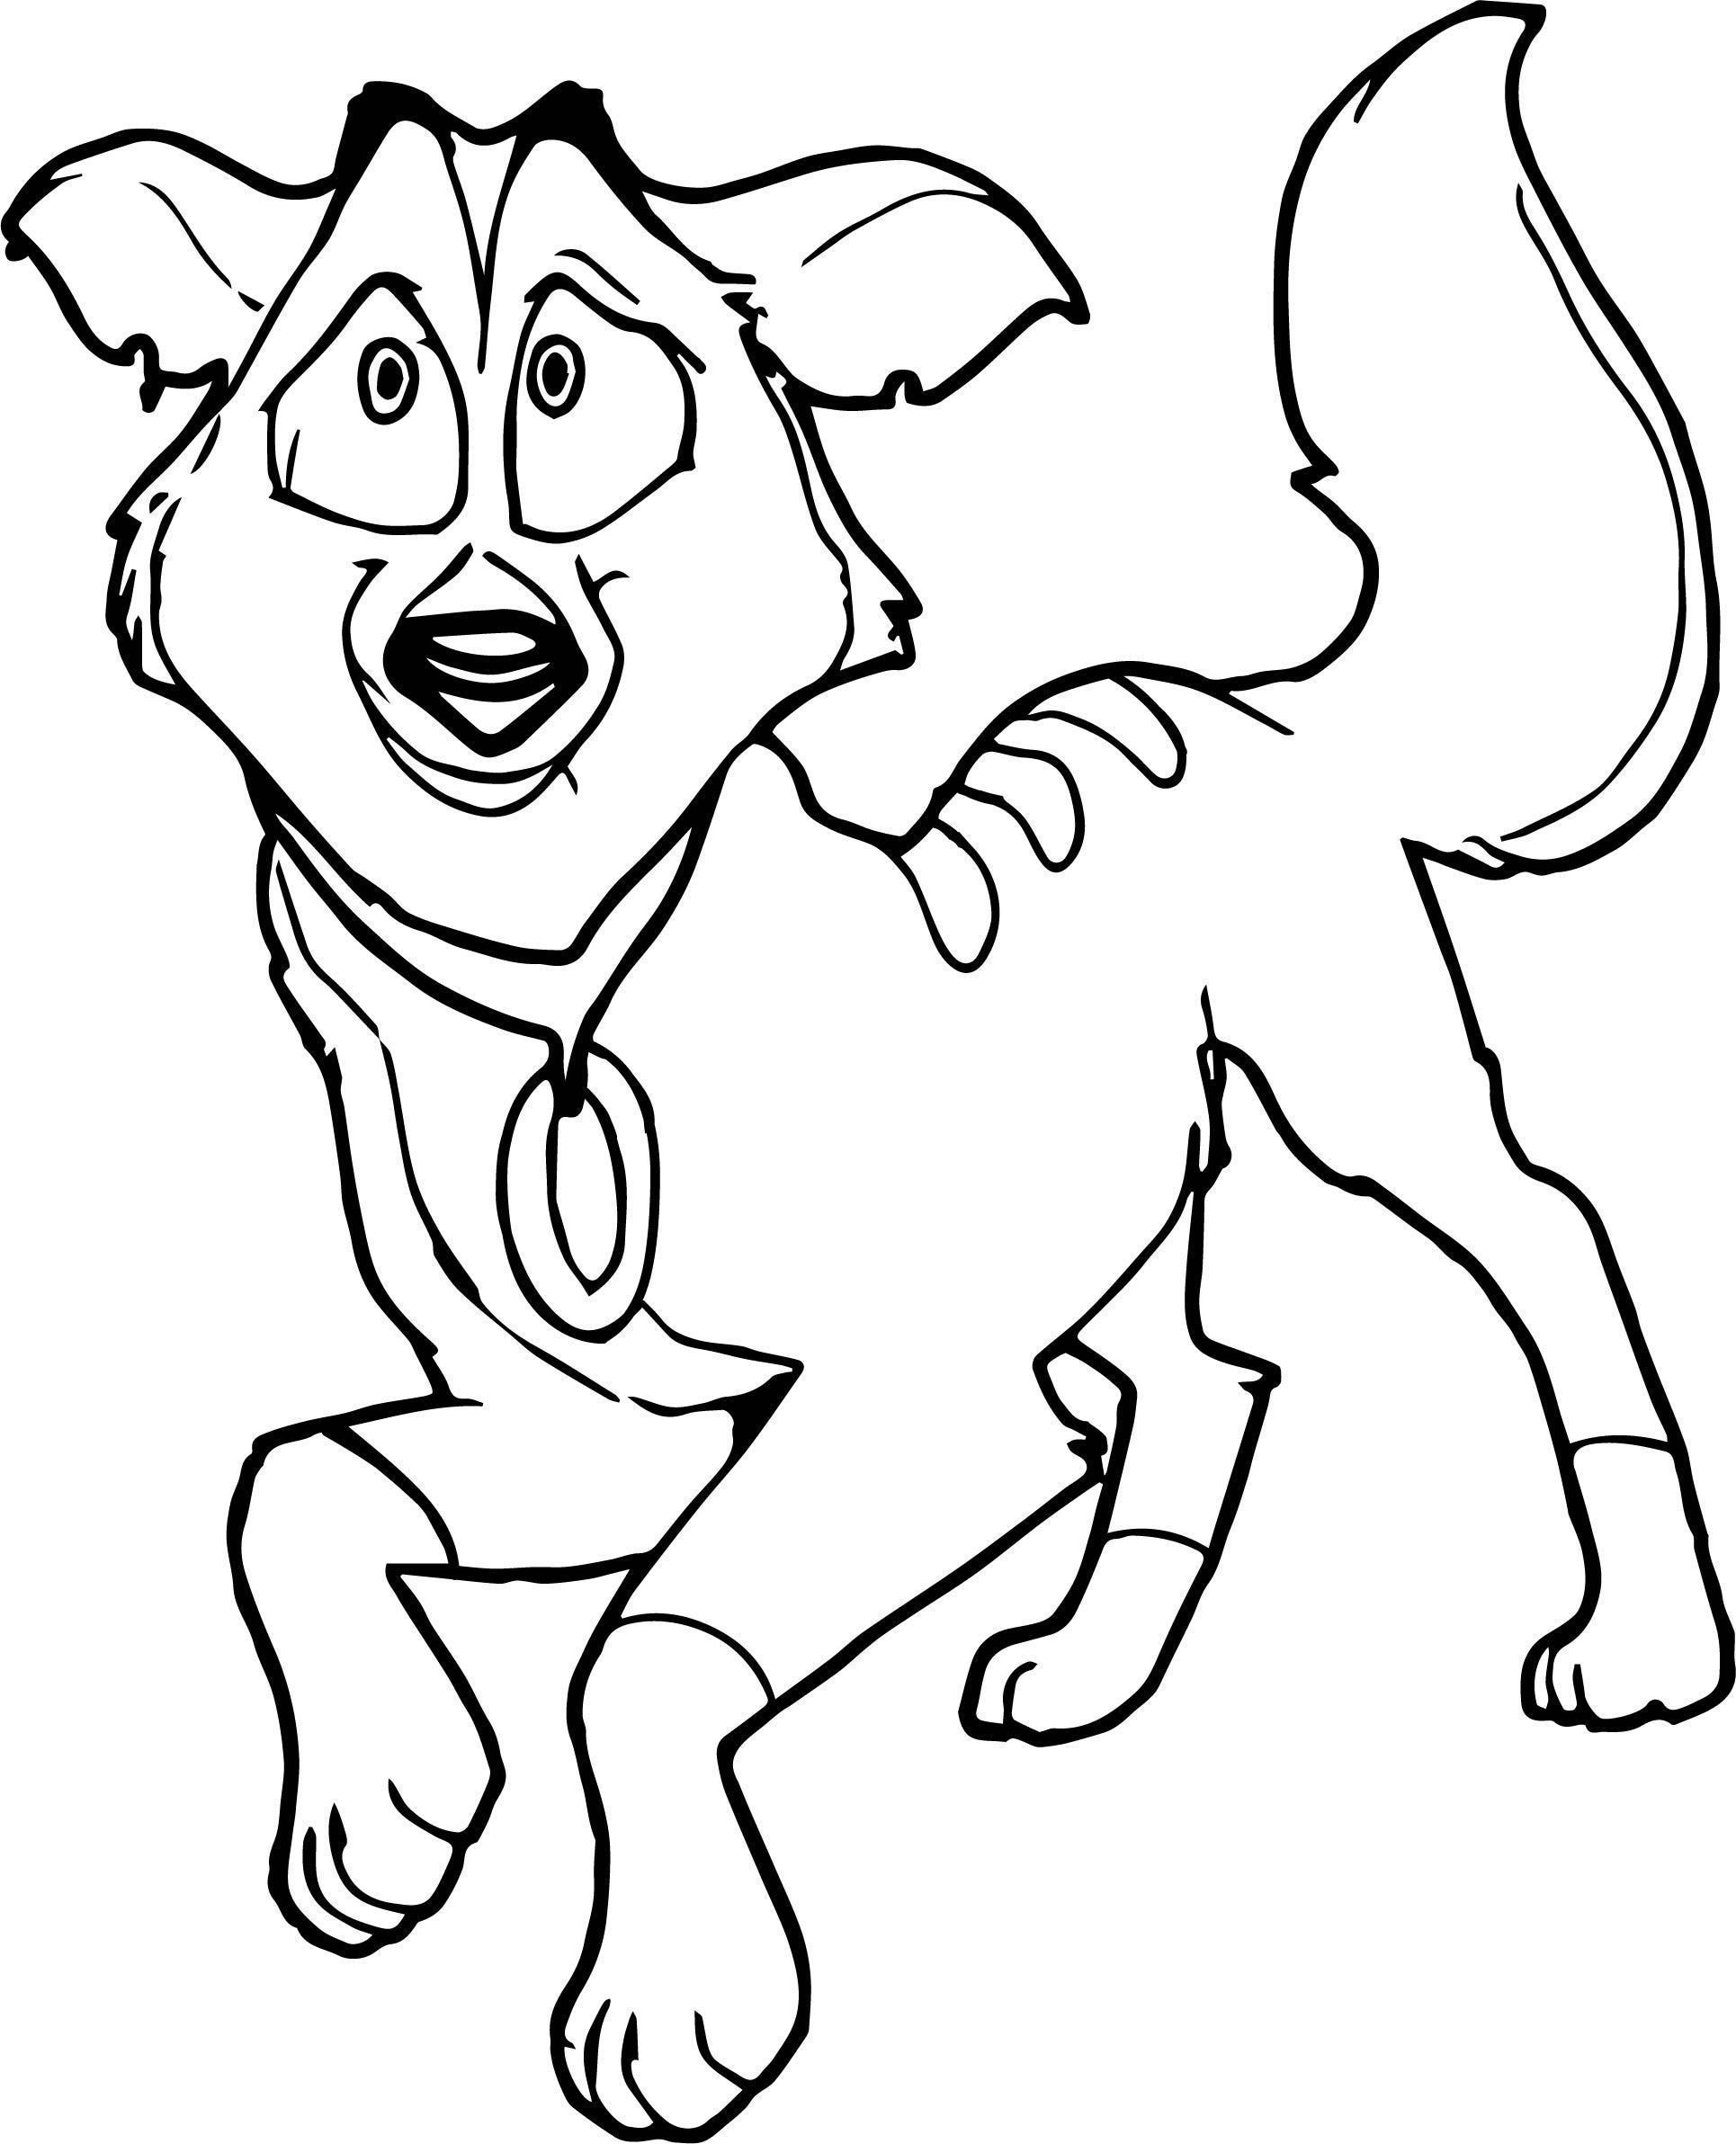 1930x2384 Appealing Woody And Slinky Dog Toy Story Coloring Page Dringrames